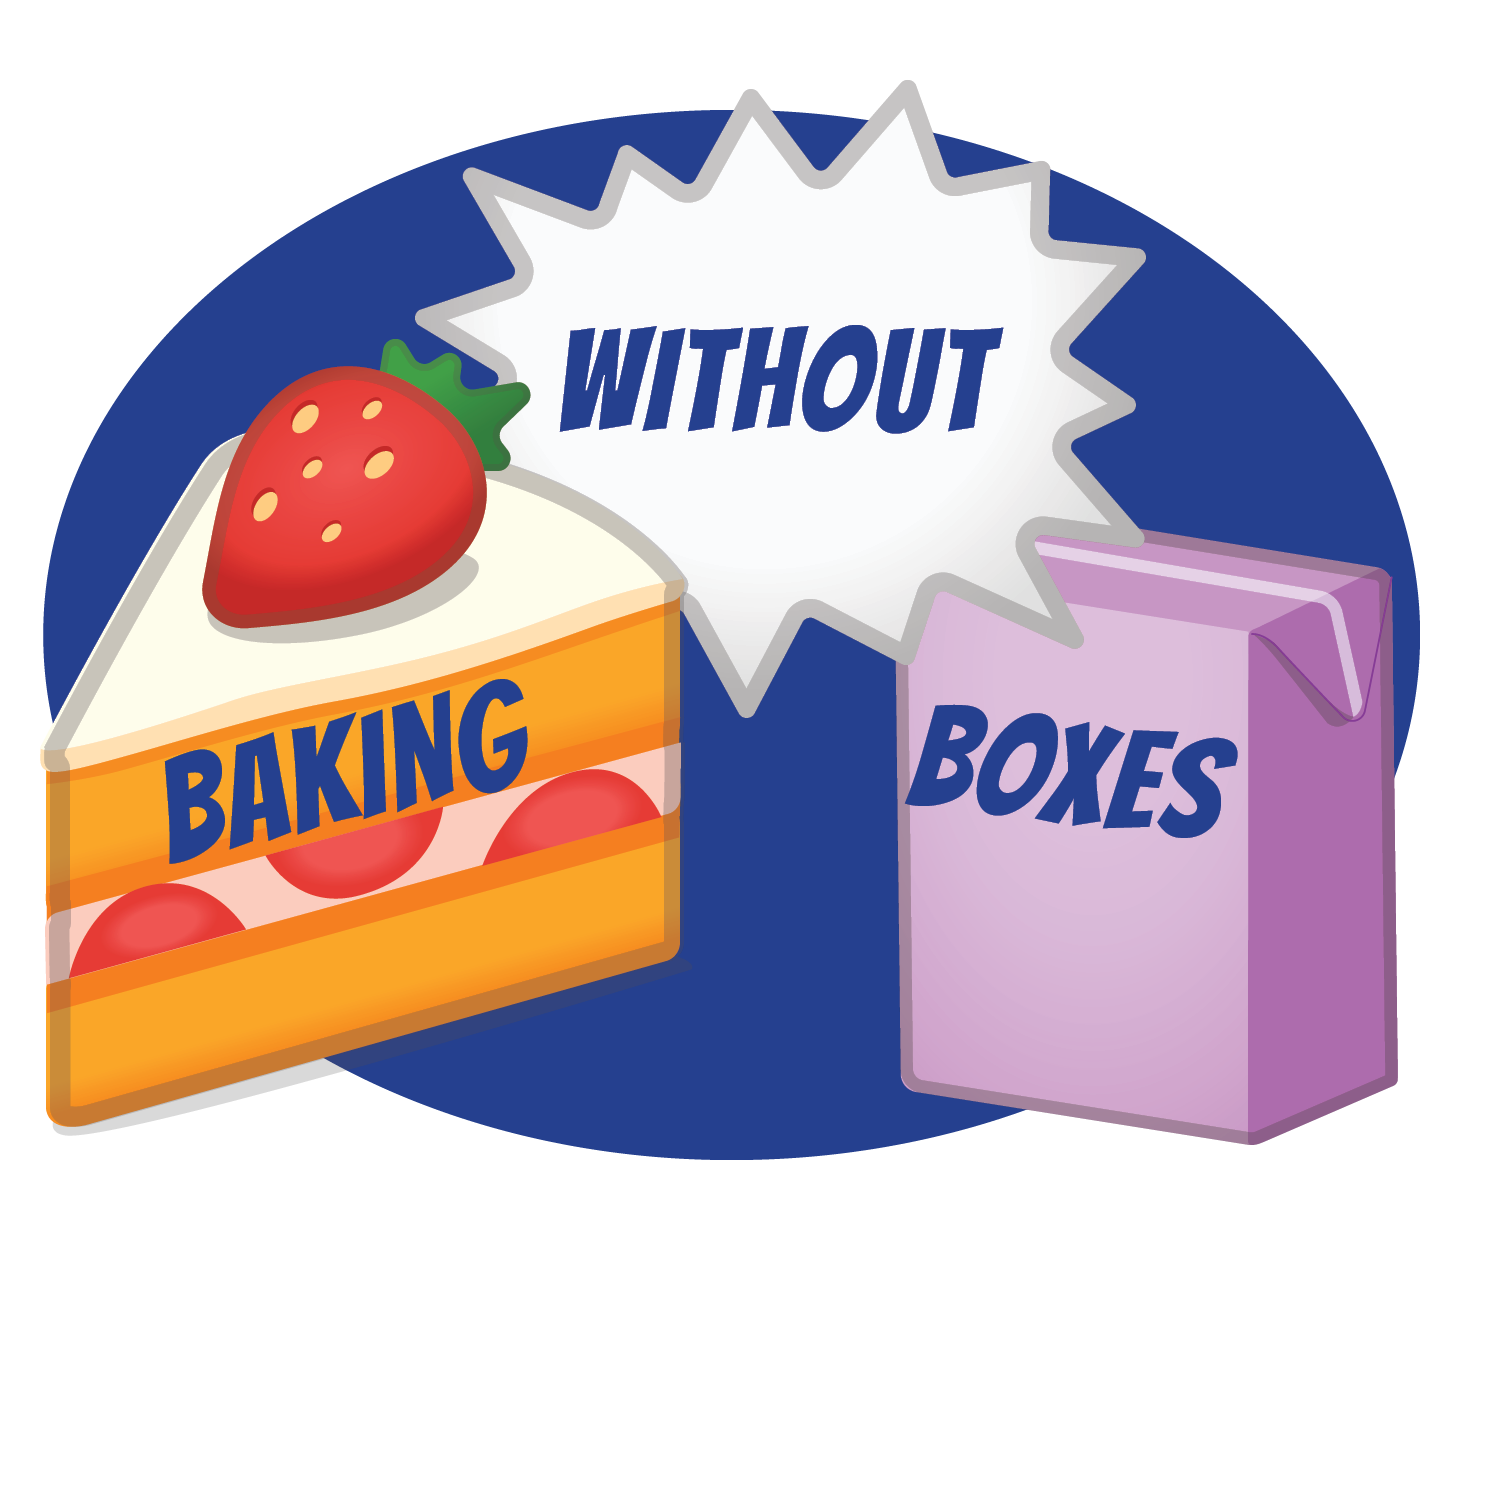 Baking without Boxes